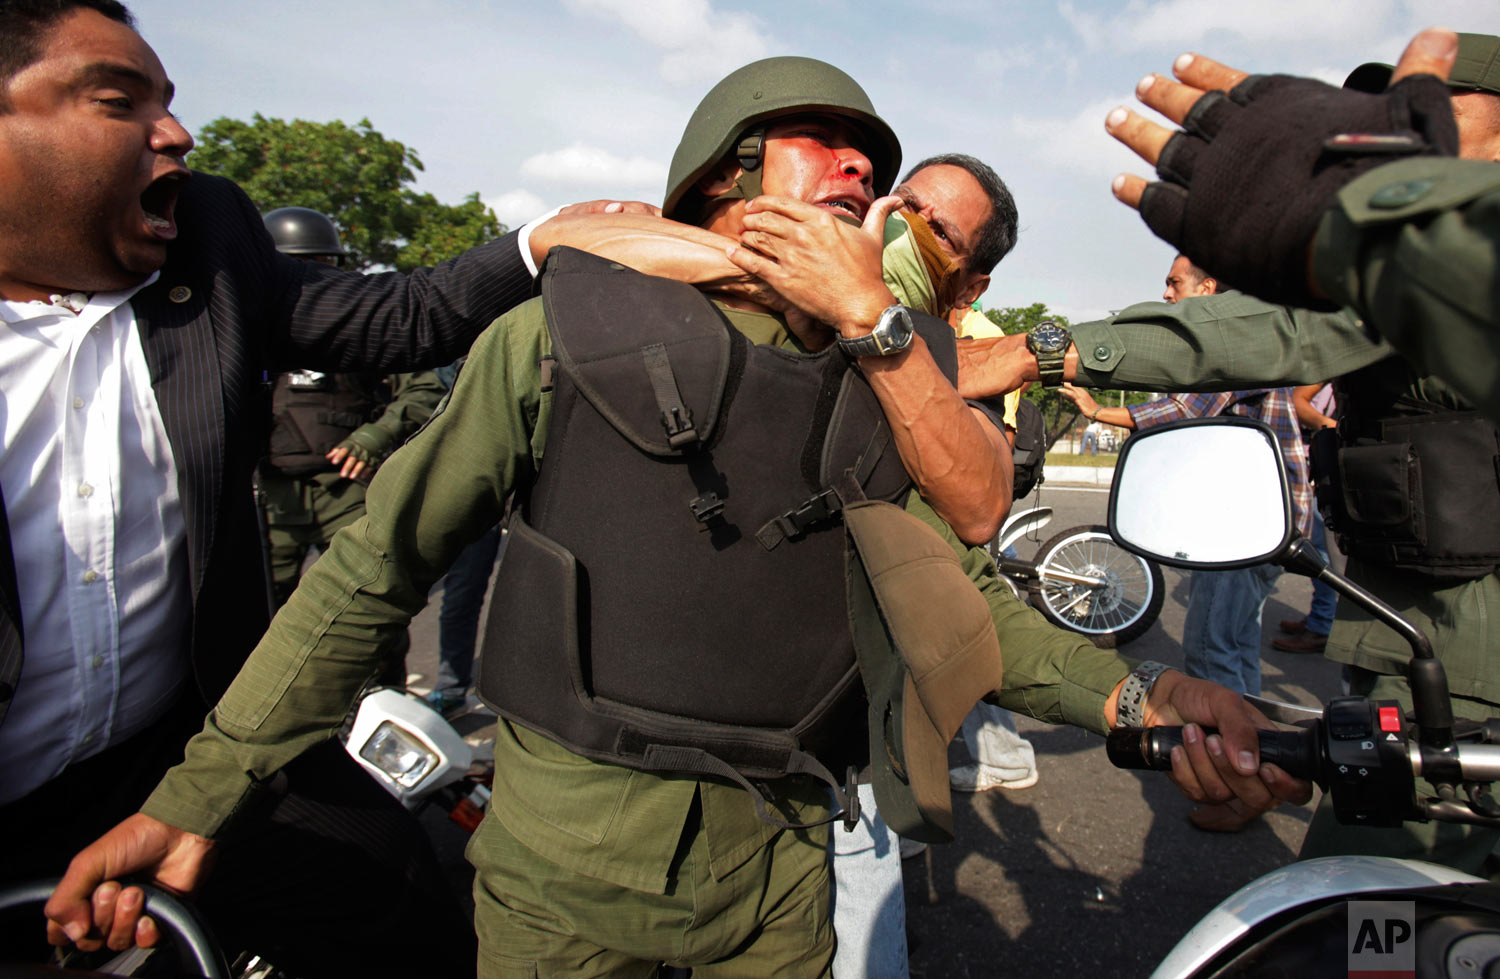 Opponents to Venezuela's President Nicolas Maduro, behind and left, scuffle with a National Guard who is loyal to President Nicolas Maduro during clashes with rebel soldiers attempting a military uprising outside La Carlota military airbase in Caracas, Venezuela, April 30, 2019.  (AP Photo/Boris Vergara)